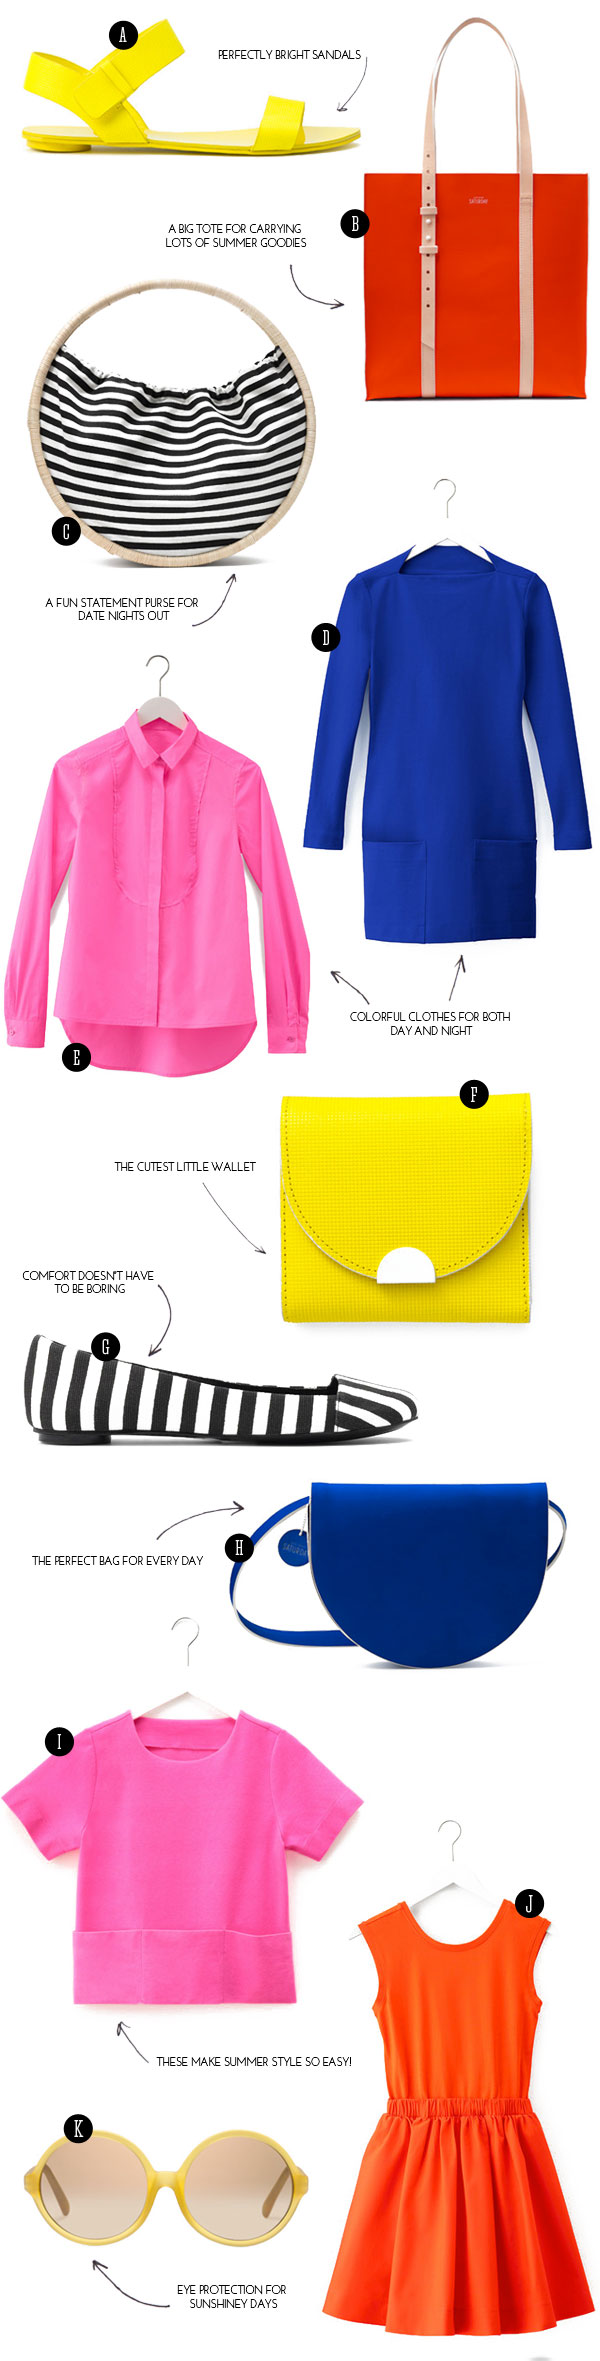 Kate Spade Saturday on Fab | Oh Happy Day!